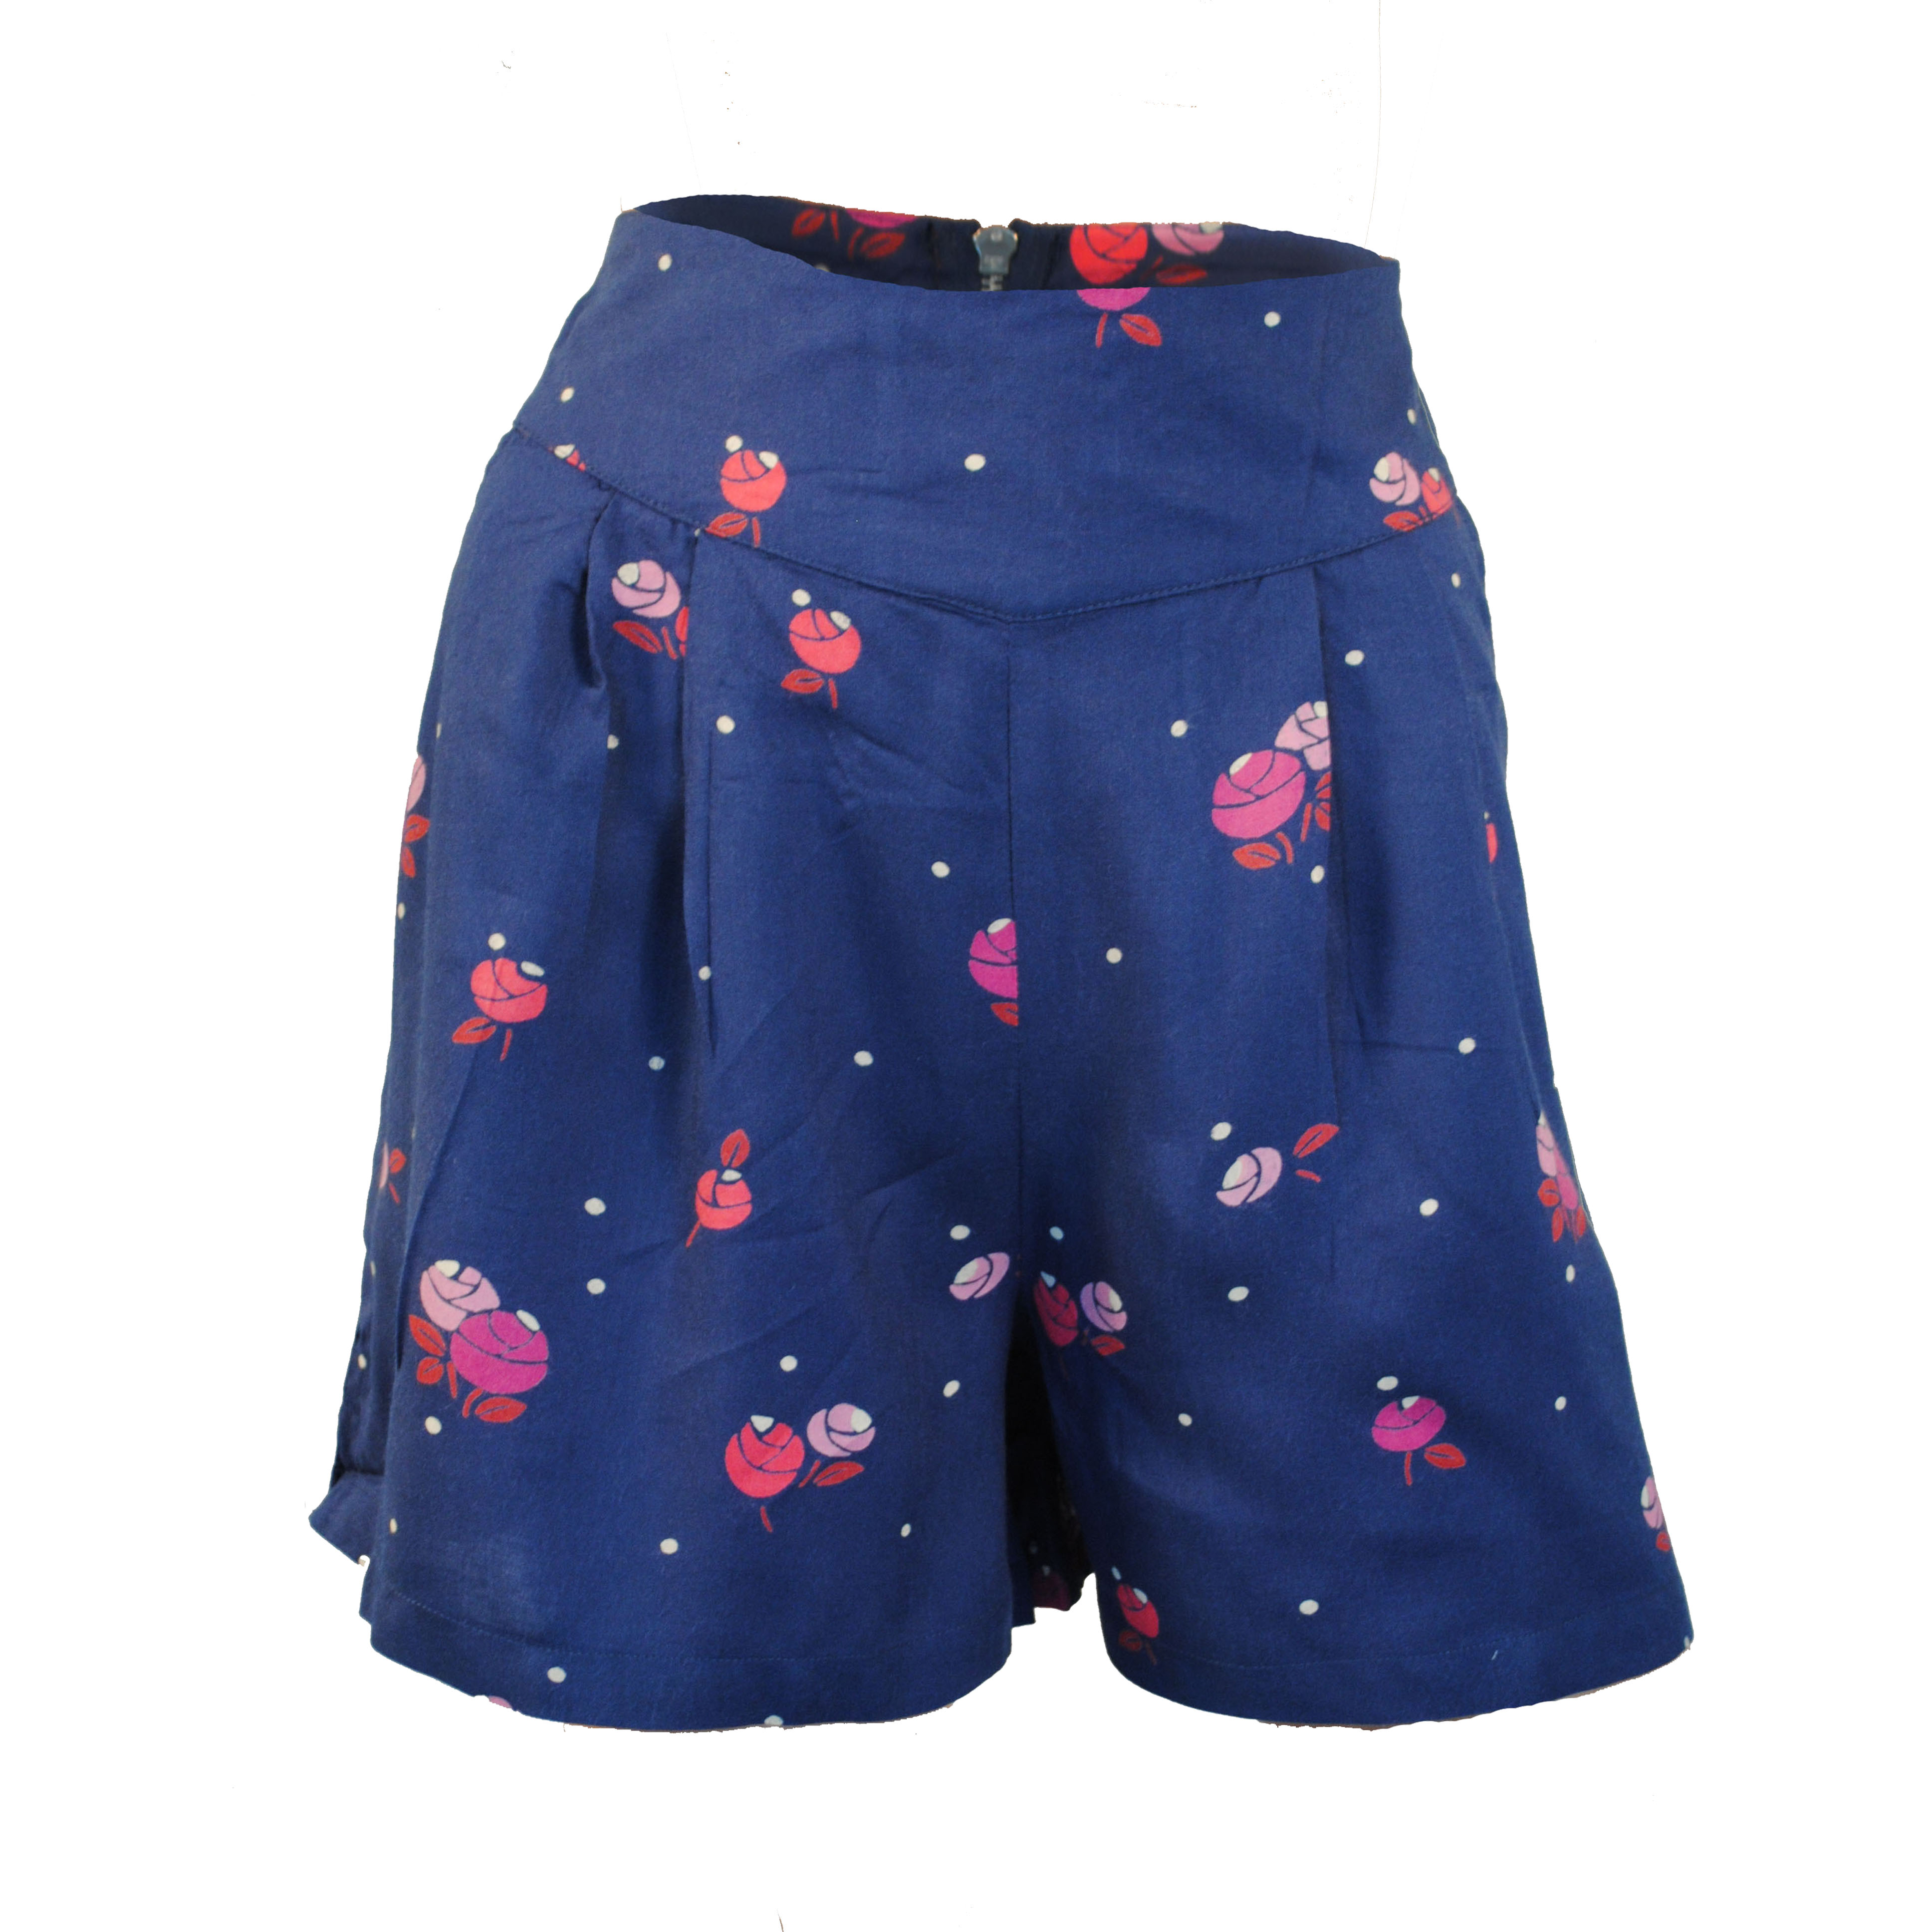 Ladies navy blue floral high waisted culottes shorts with zip ...